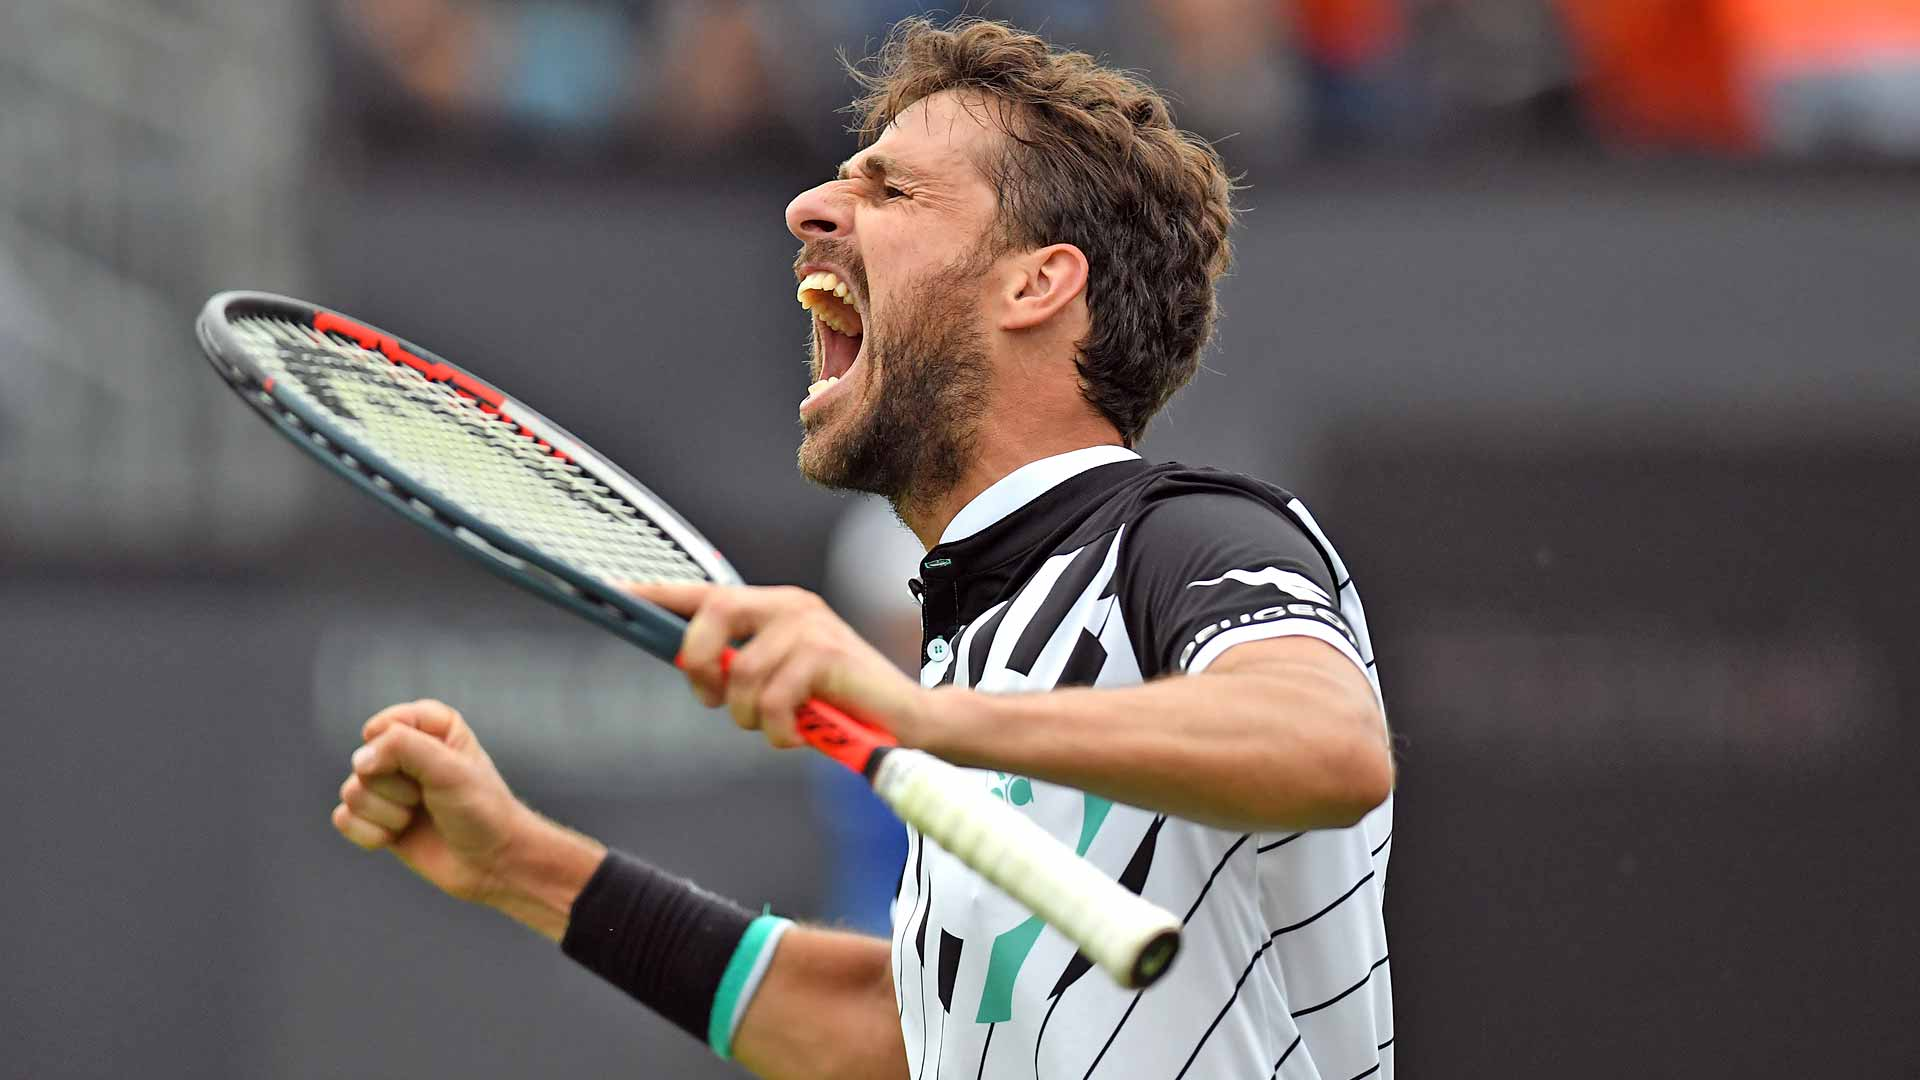 <a href='https://www.atptour.com/en/players/robin-haase/h756/overview'>Robin Haase</a>